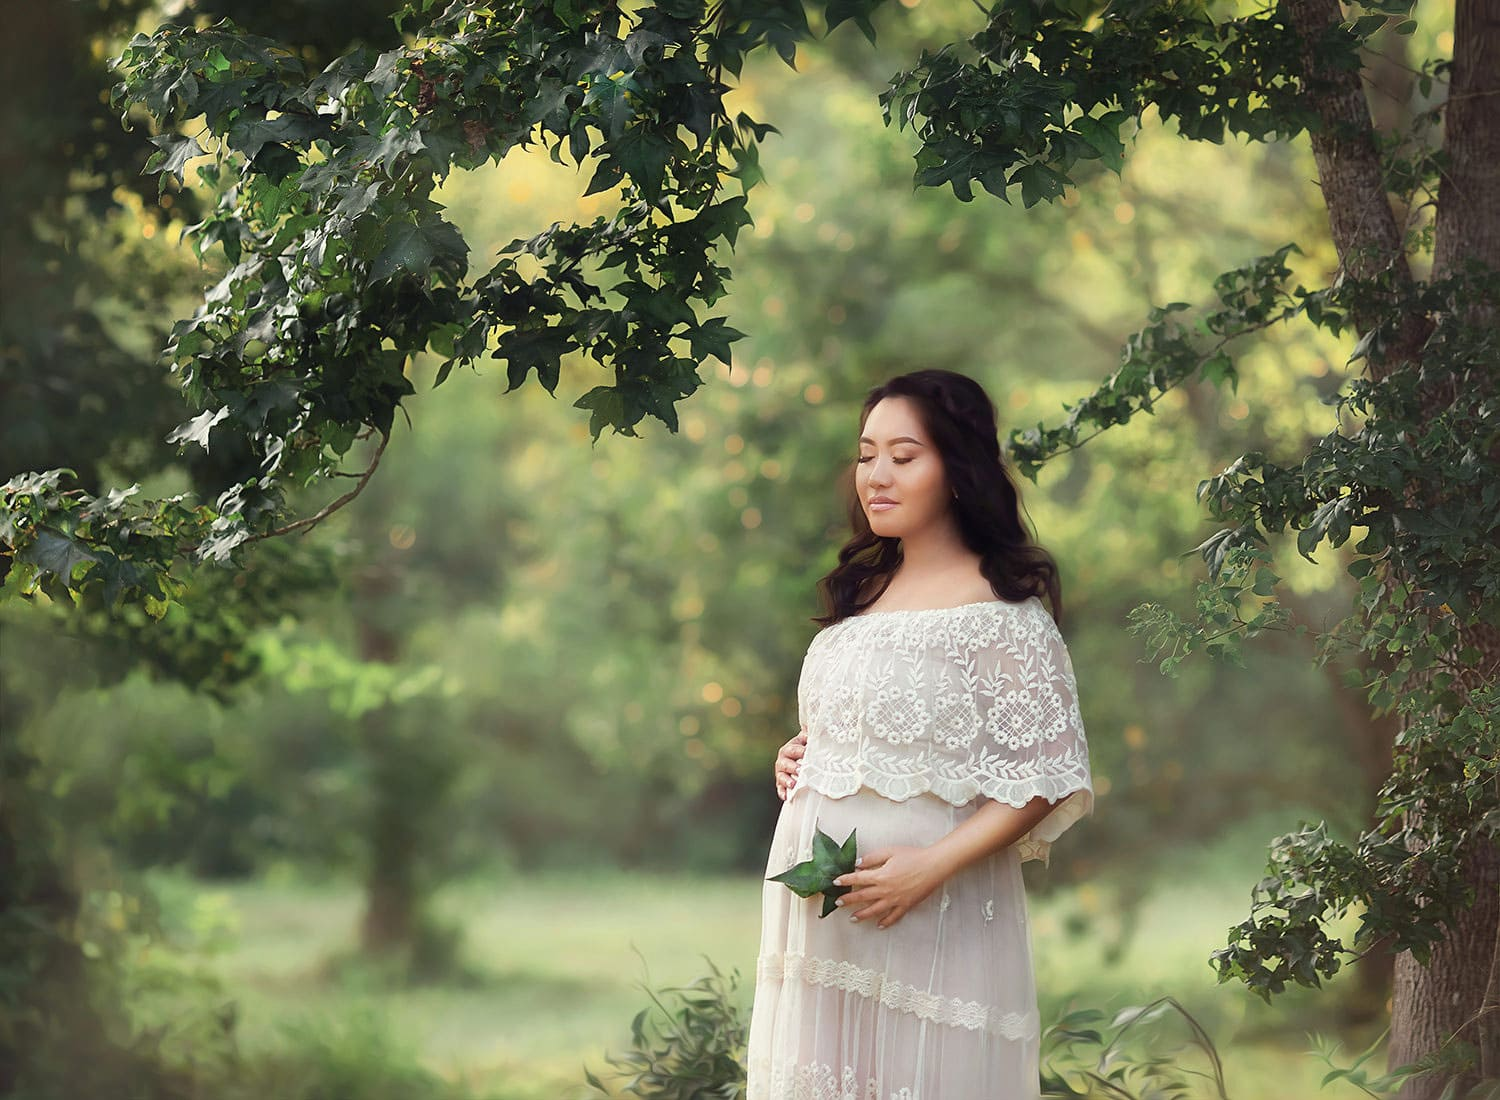 New Orleans maternity session {Jessica}